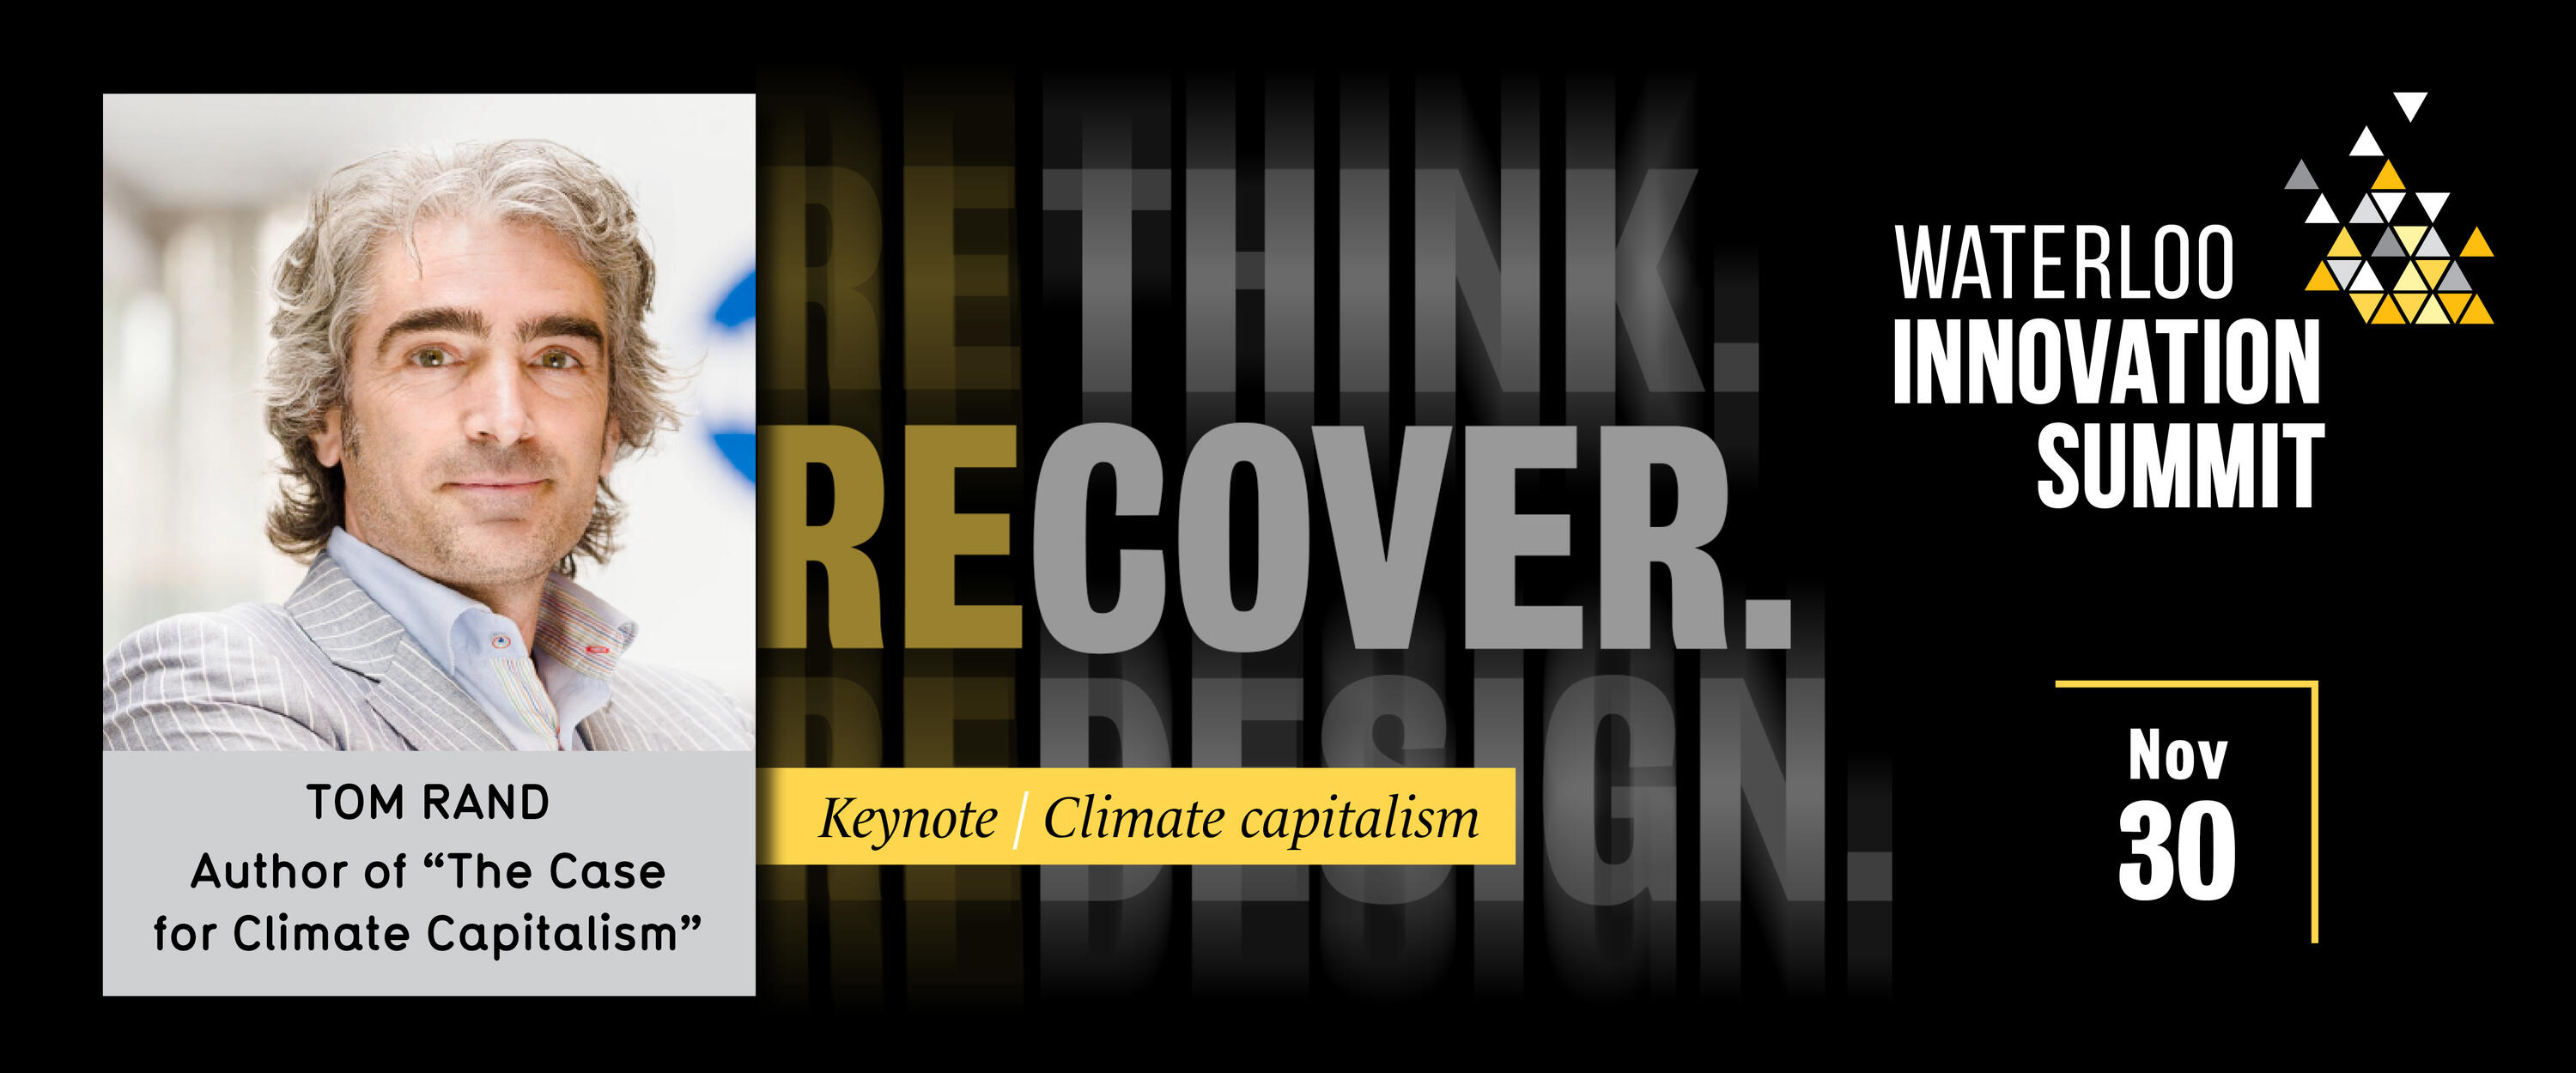 """Tom Rand, Author of """"The case for climate capitalism"""", Waterloo Innovation summit keynote speaker"""